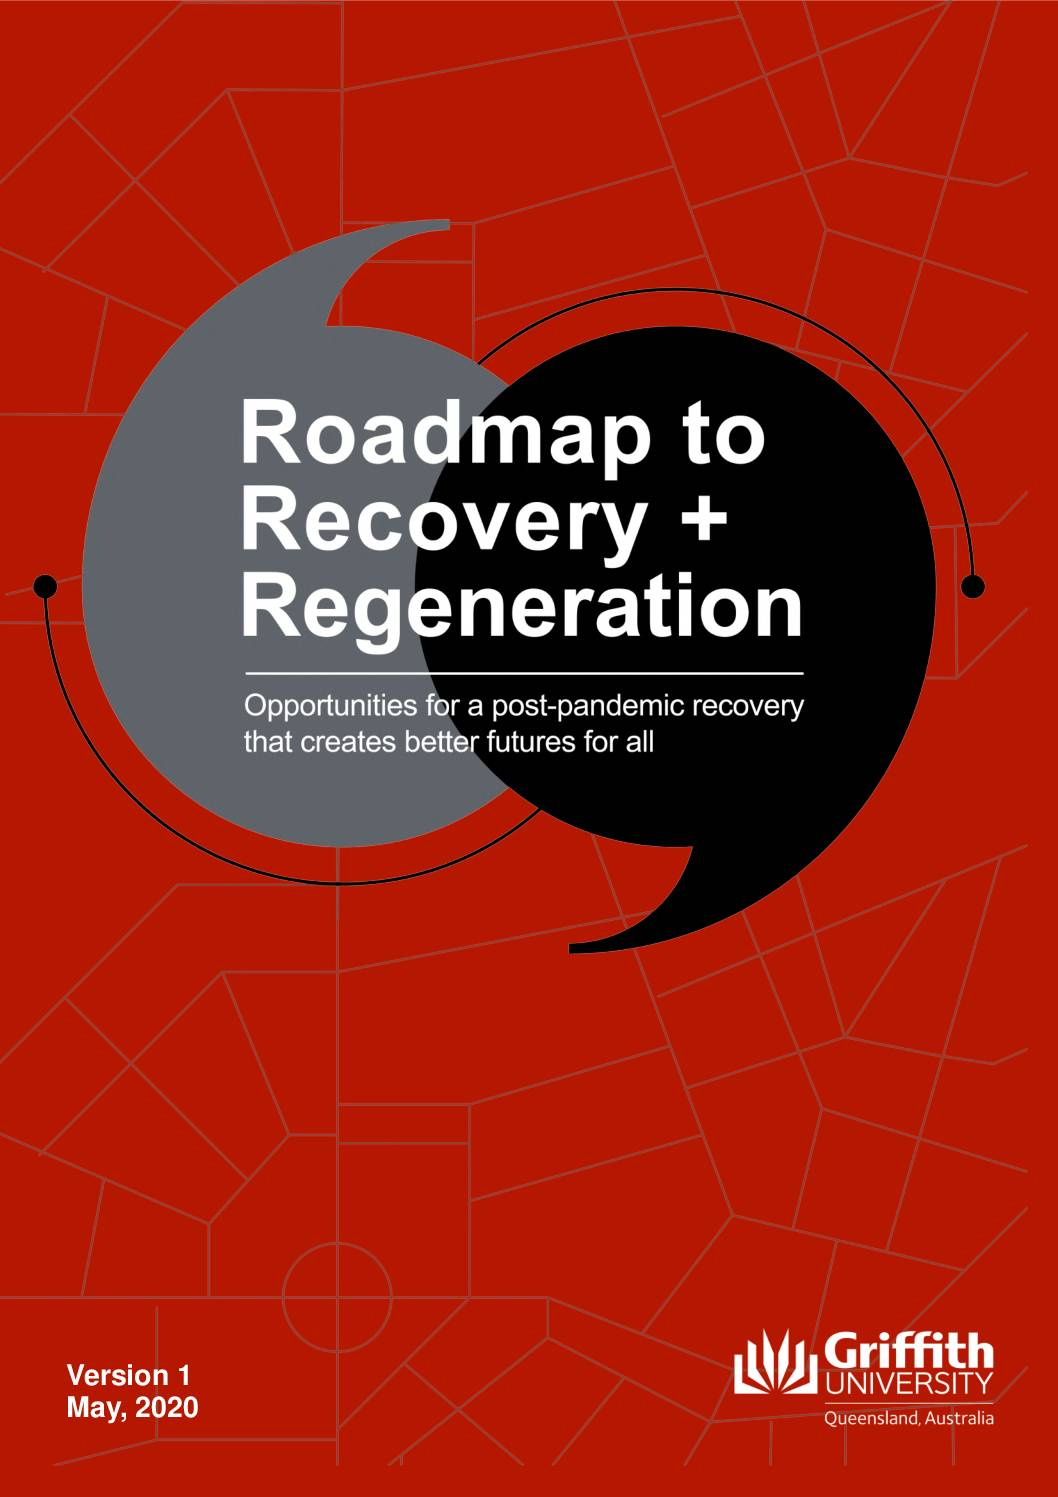 Roadmap to Recovery and Regeneration post COVID-19